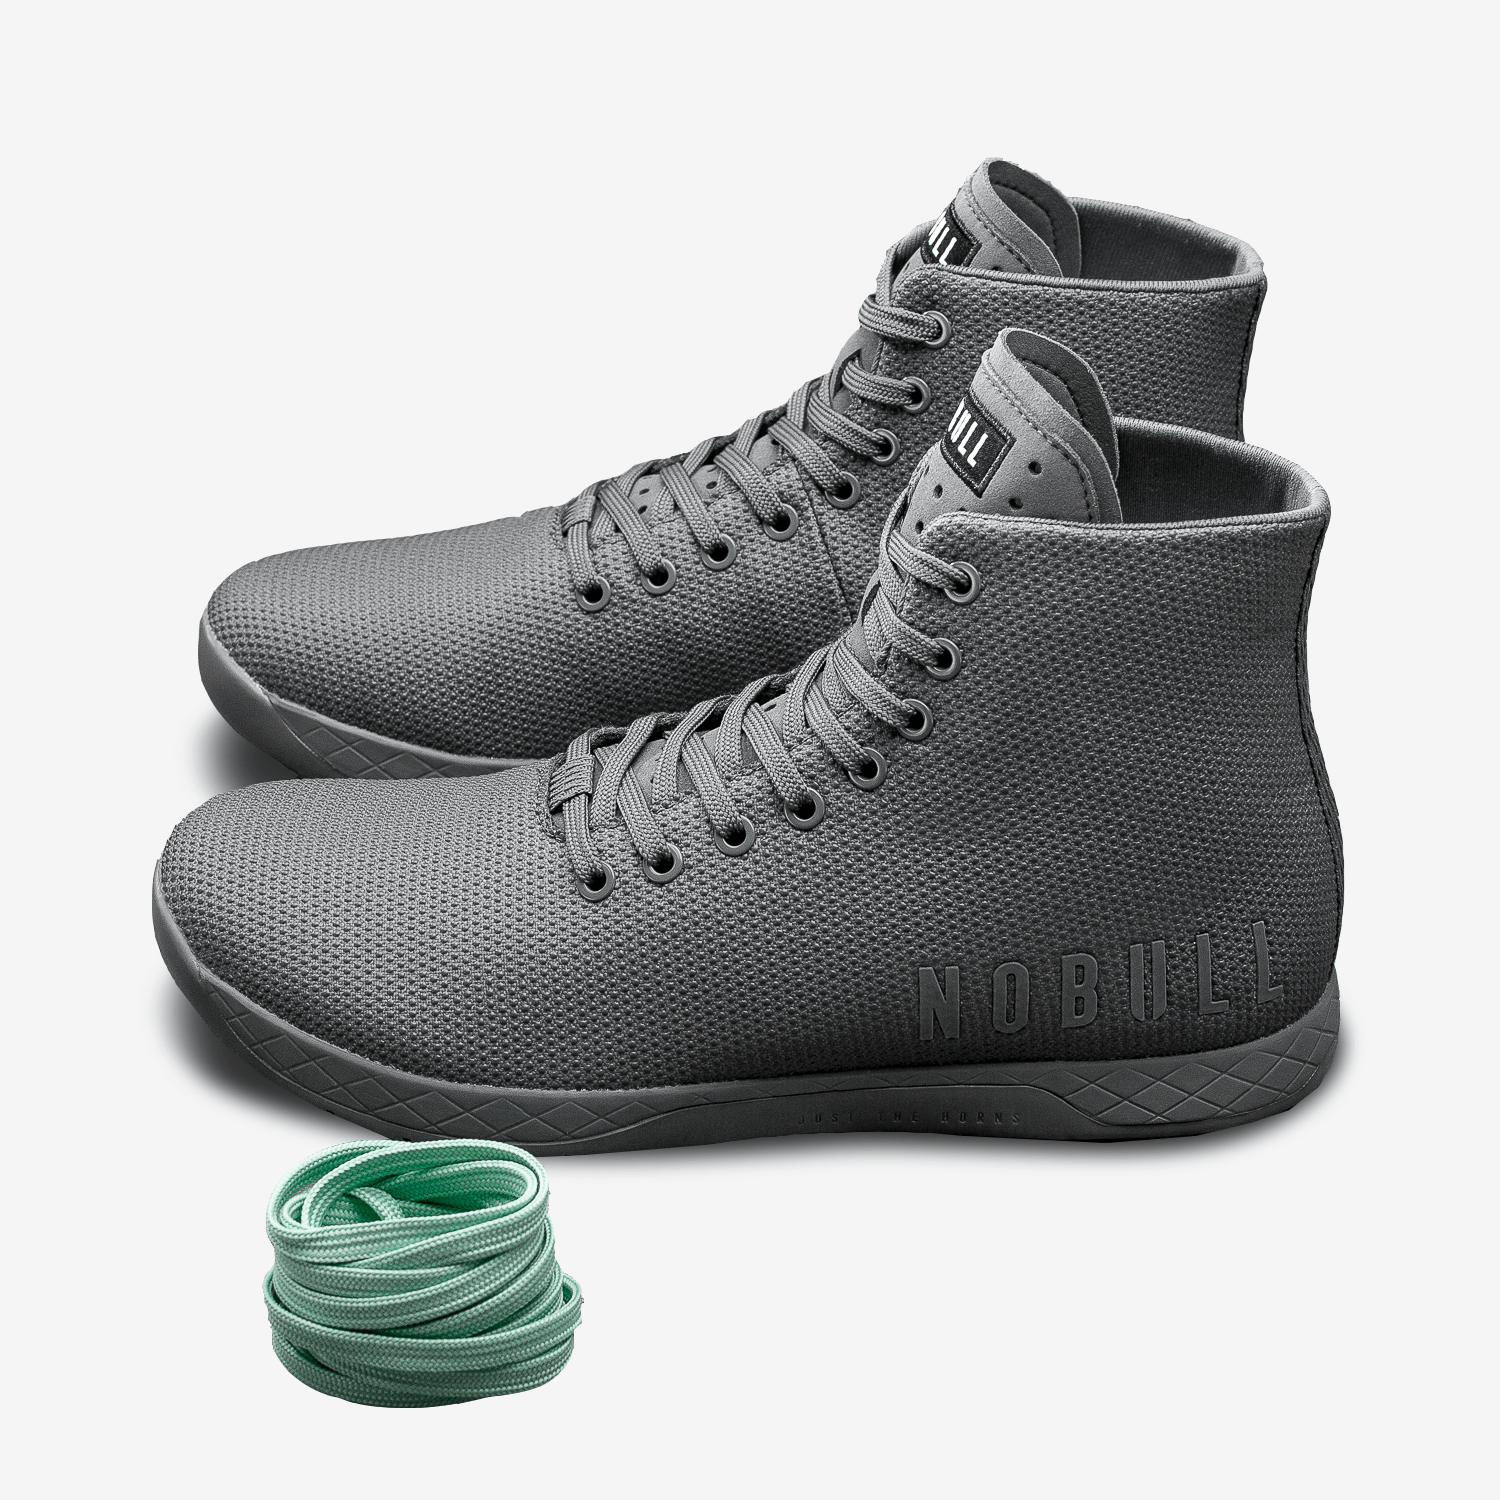 NOBULL Dark Grey High-Top Trainers